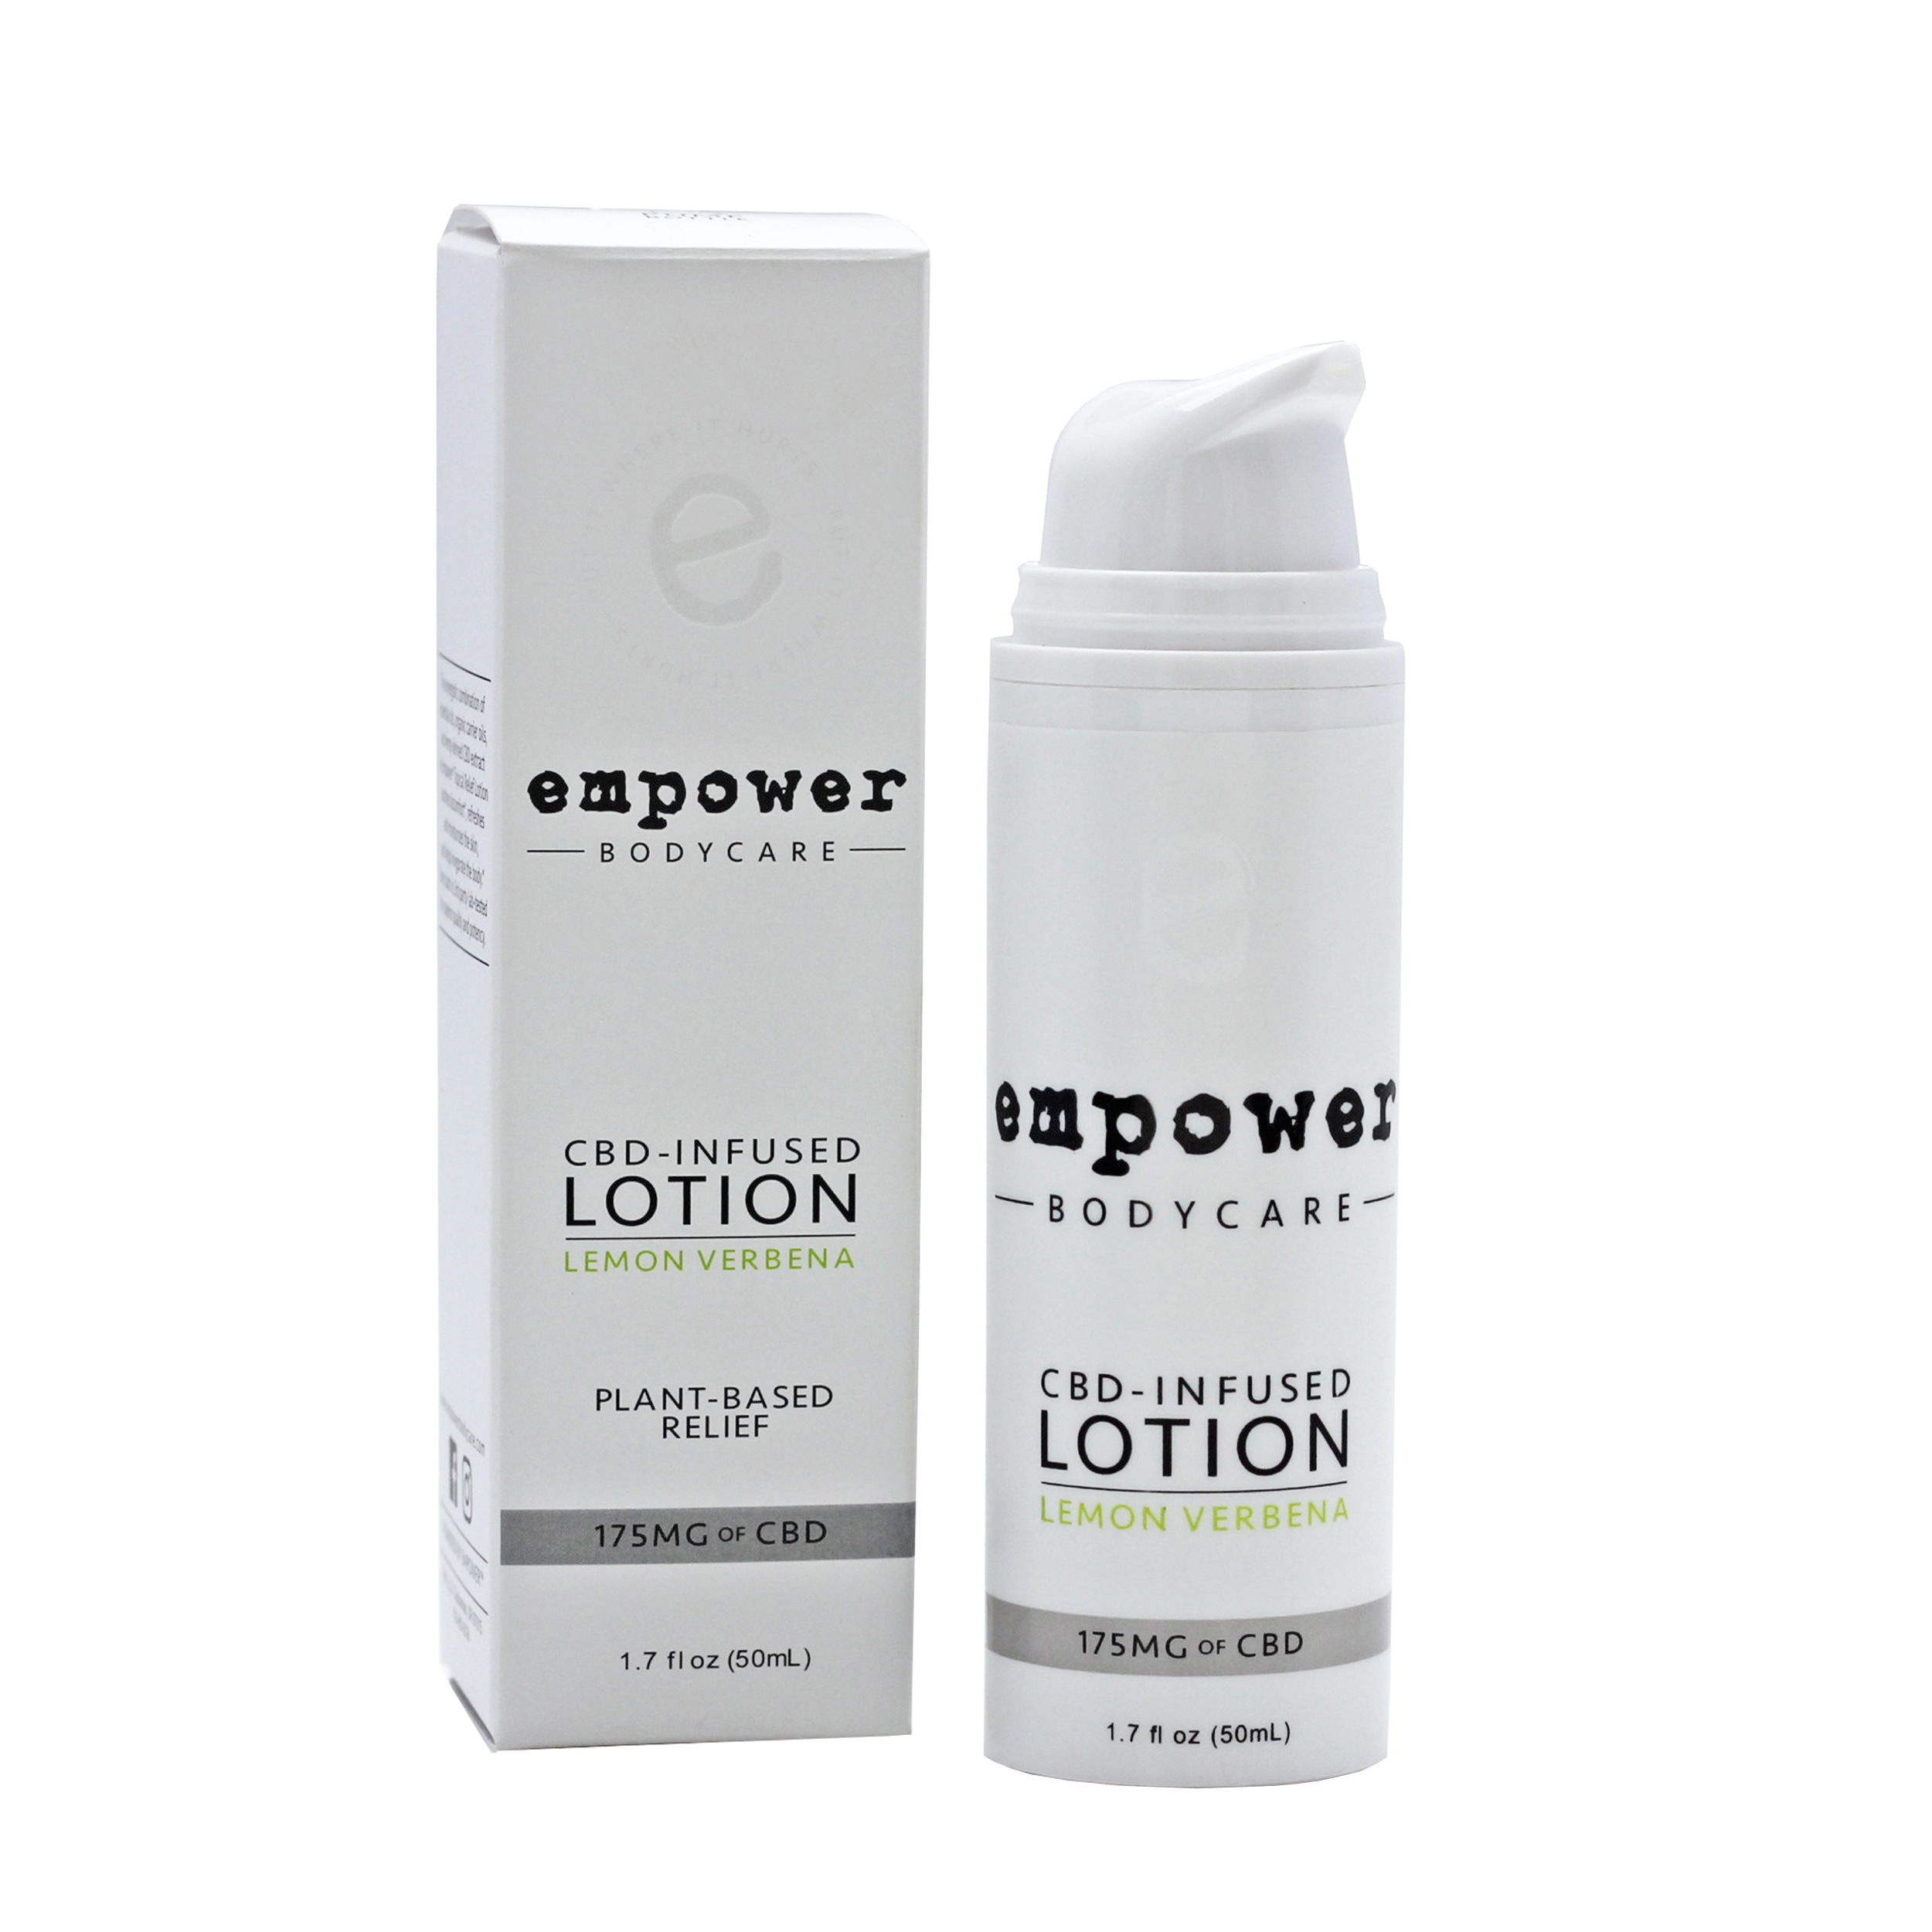 Empower® CBD Topical Relief Lotion.jpg